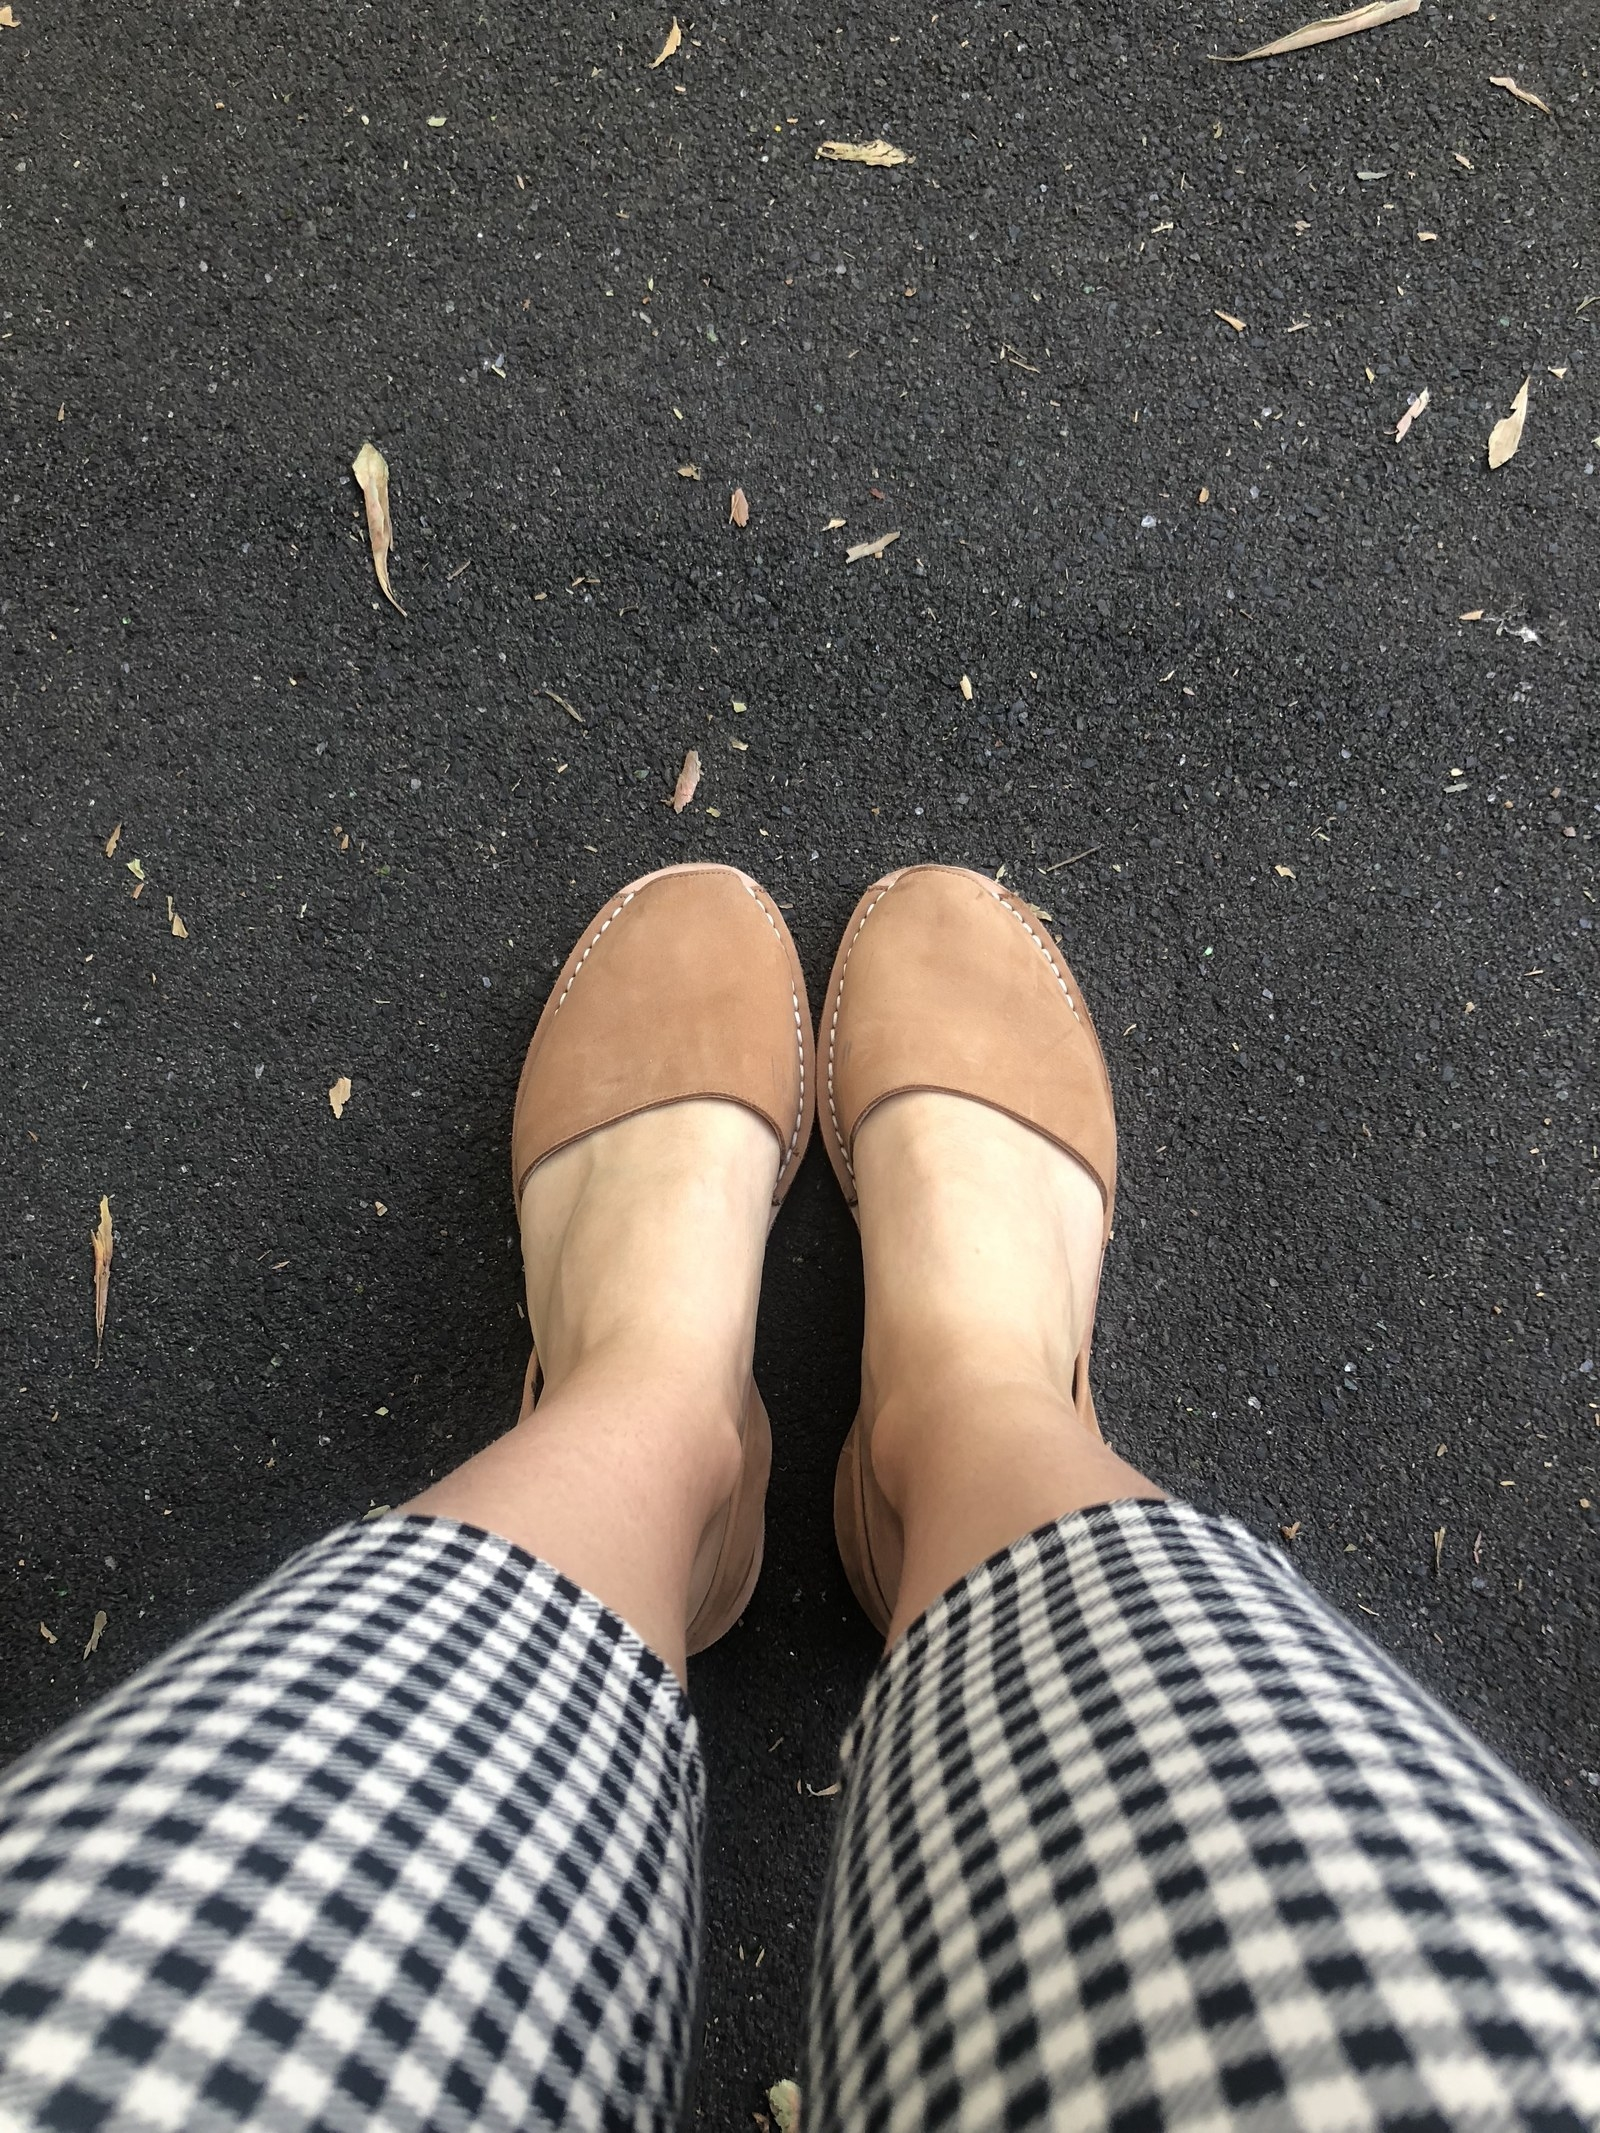 Where To Find Comfortable And Stylish Shoes